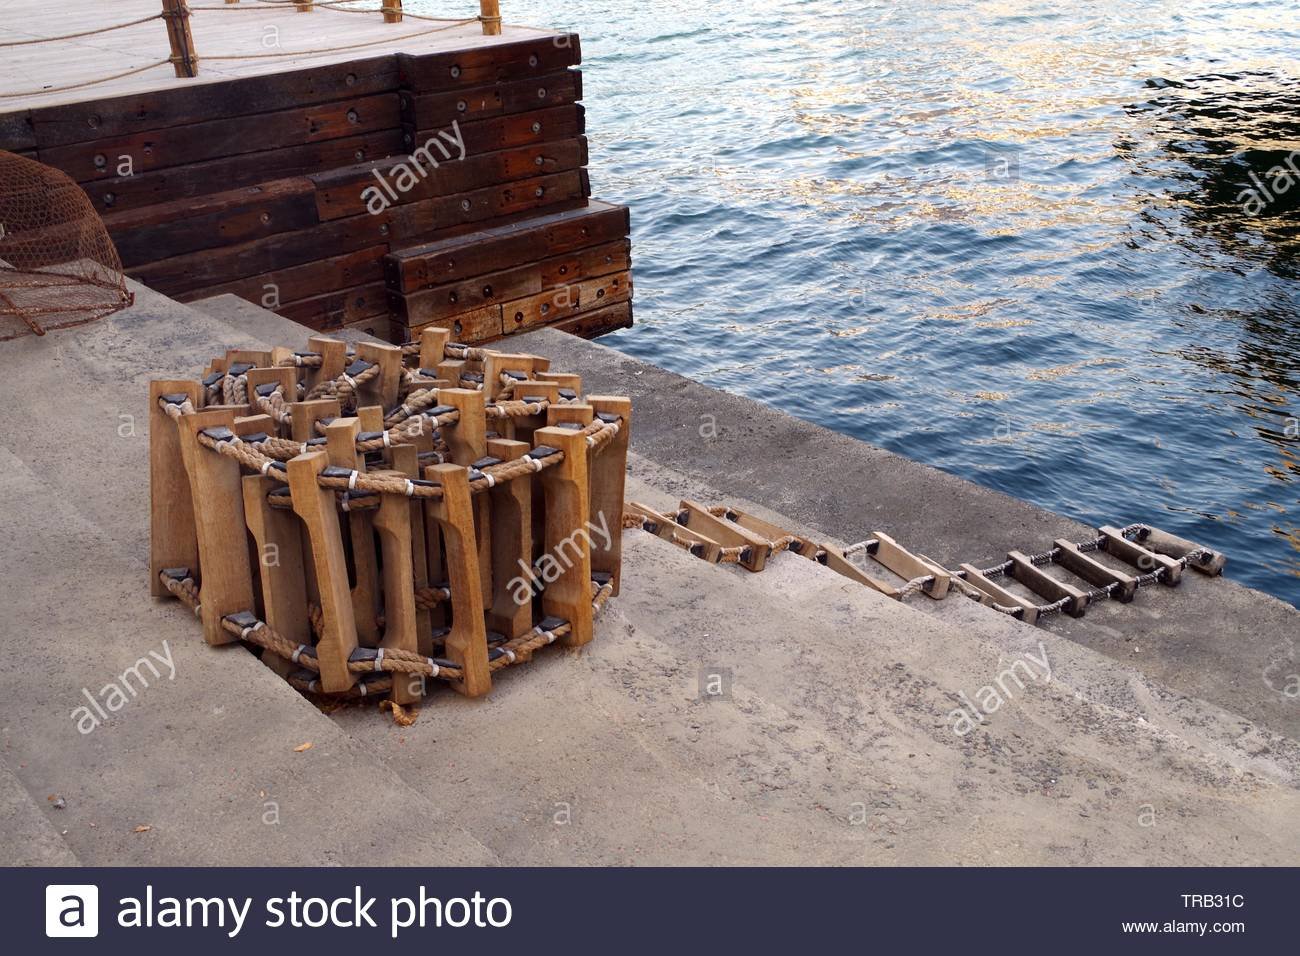 Picture of a marine ladder used to usually embark onboard boats while they are at sea, also called pilot ladder. Marine background. - Stock Image